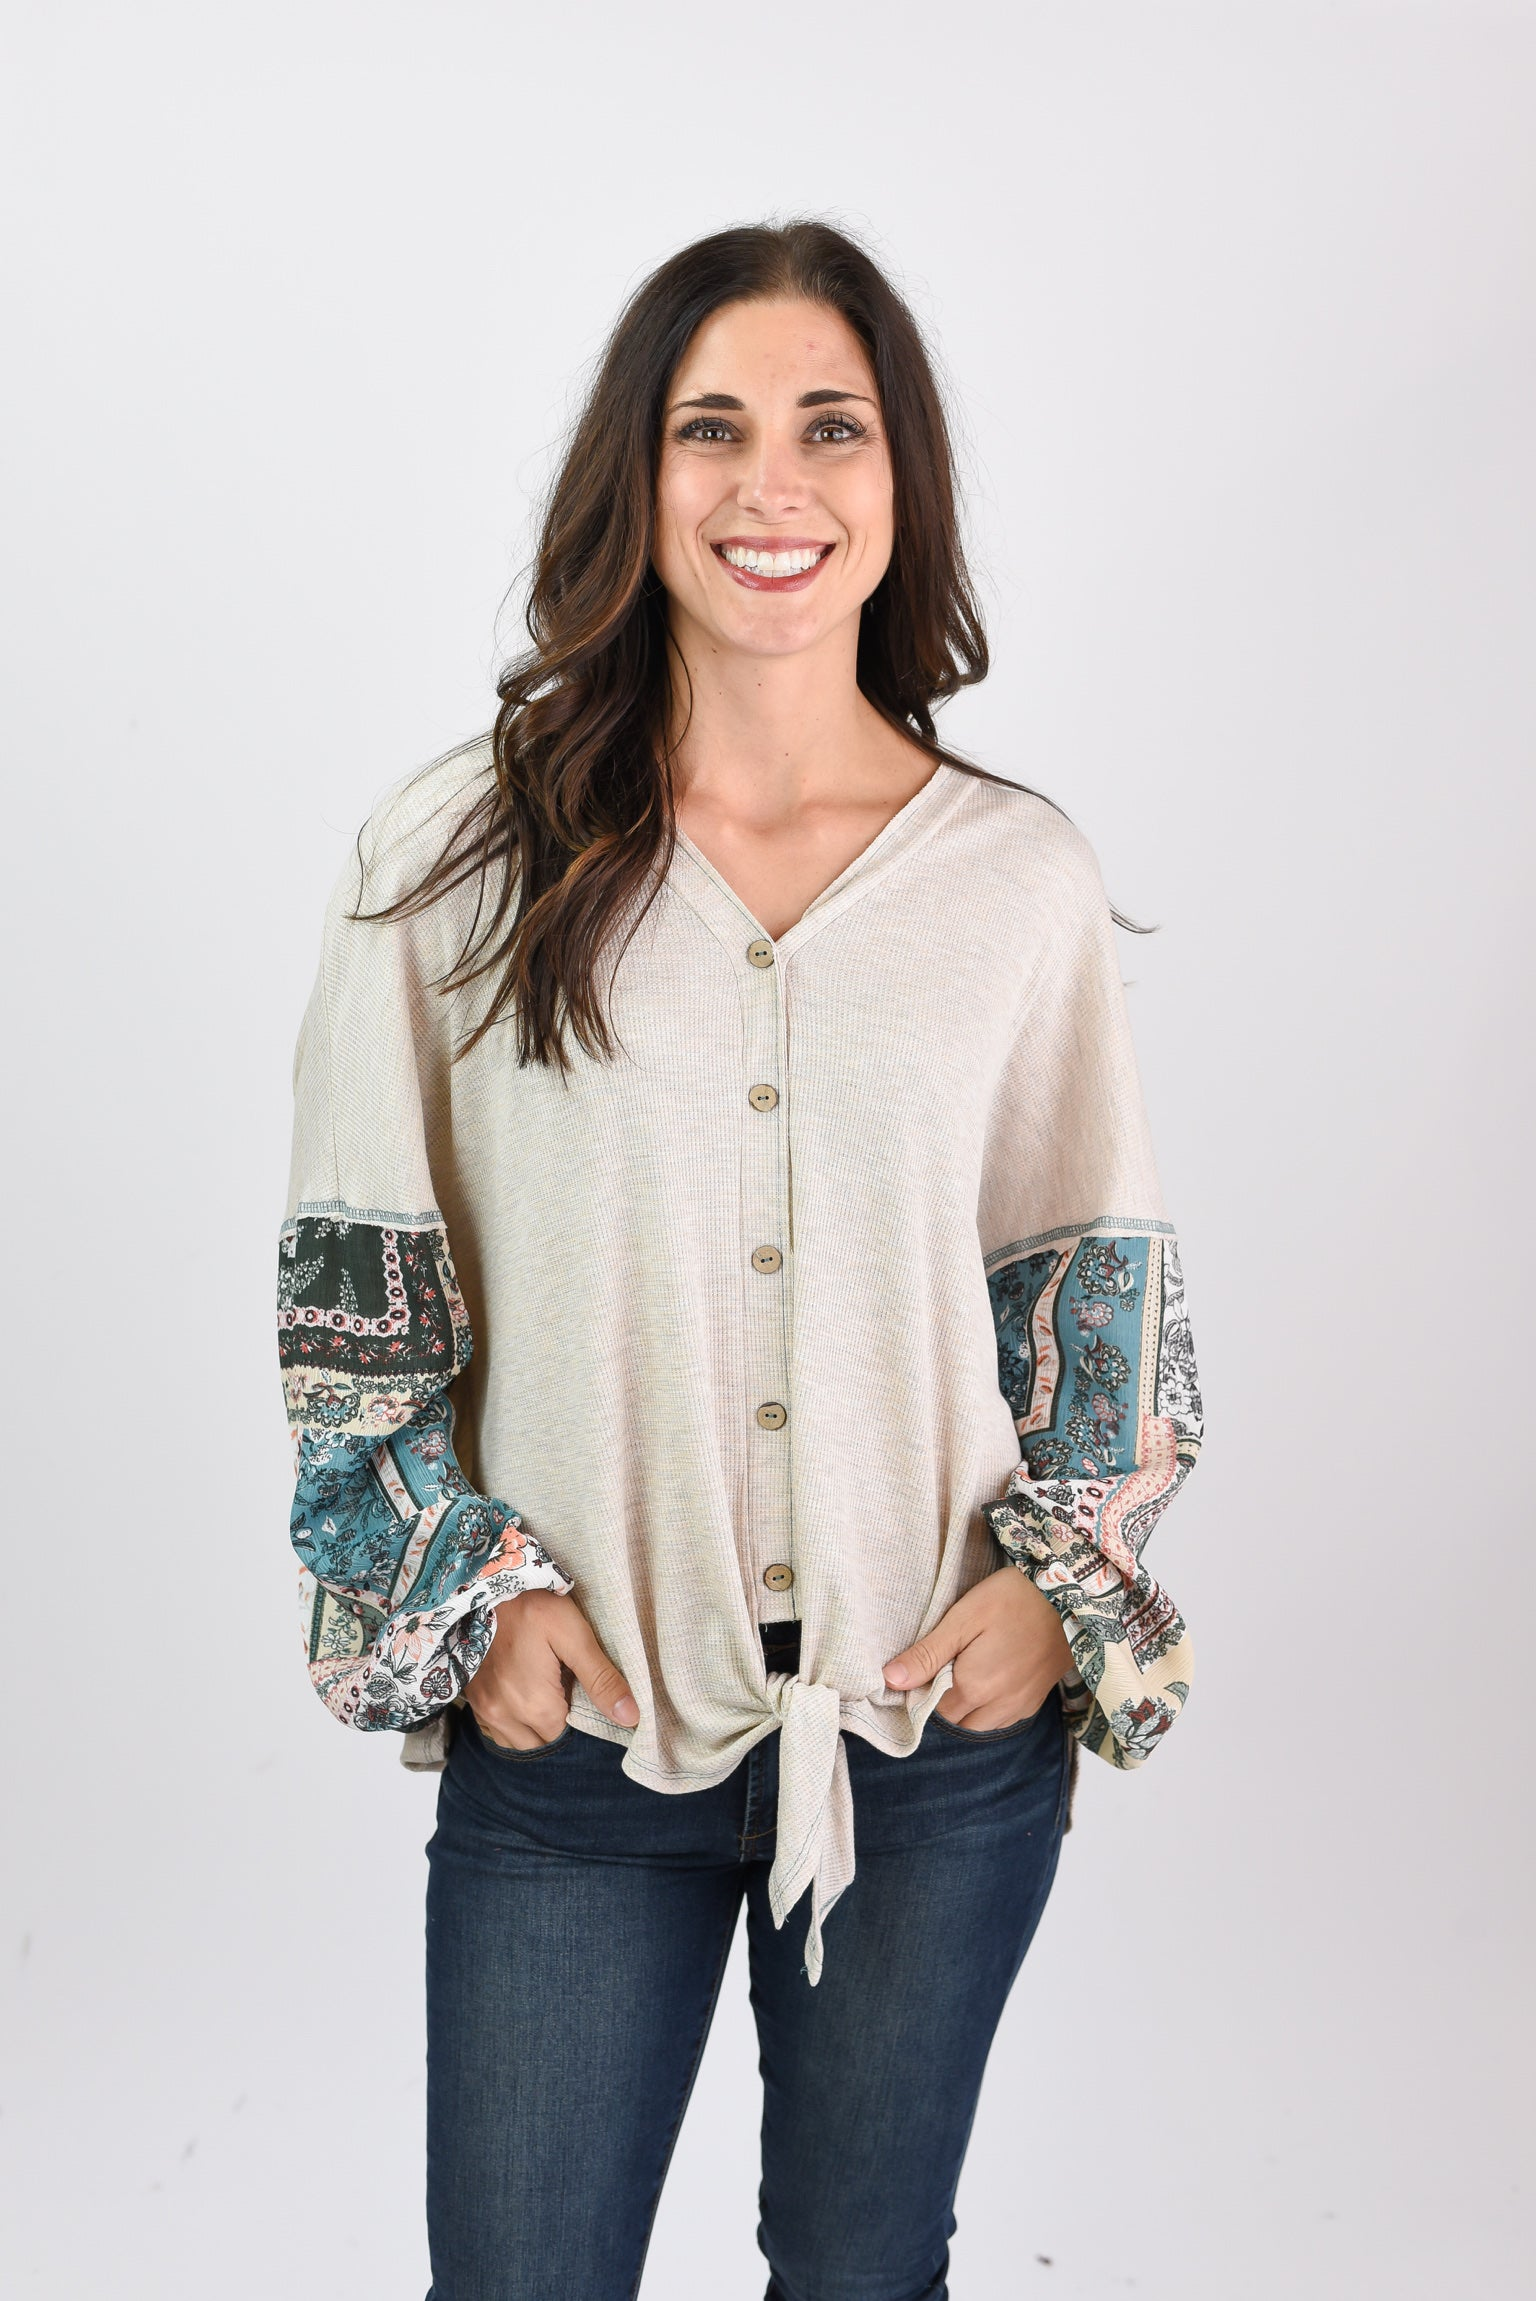 Chasing Memories Cream Patterned Long Sleeve Top